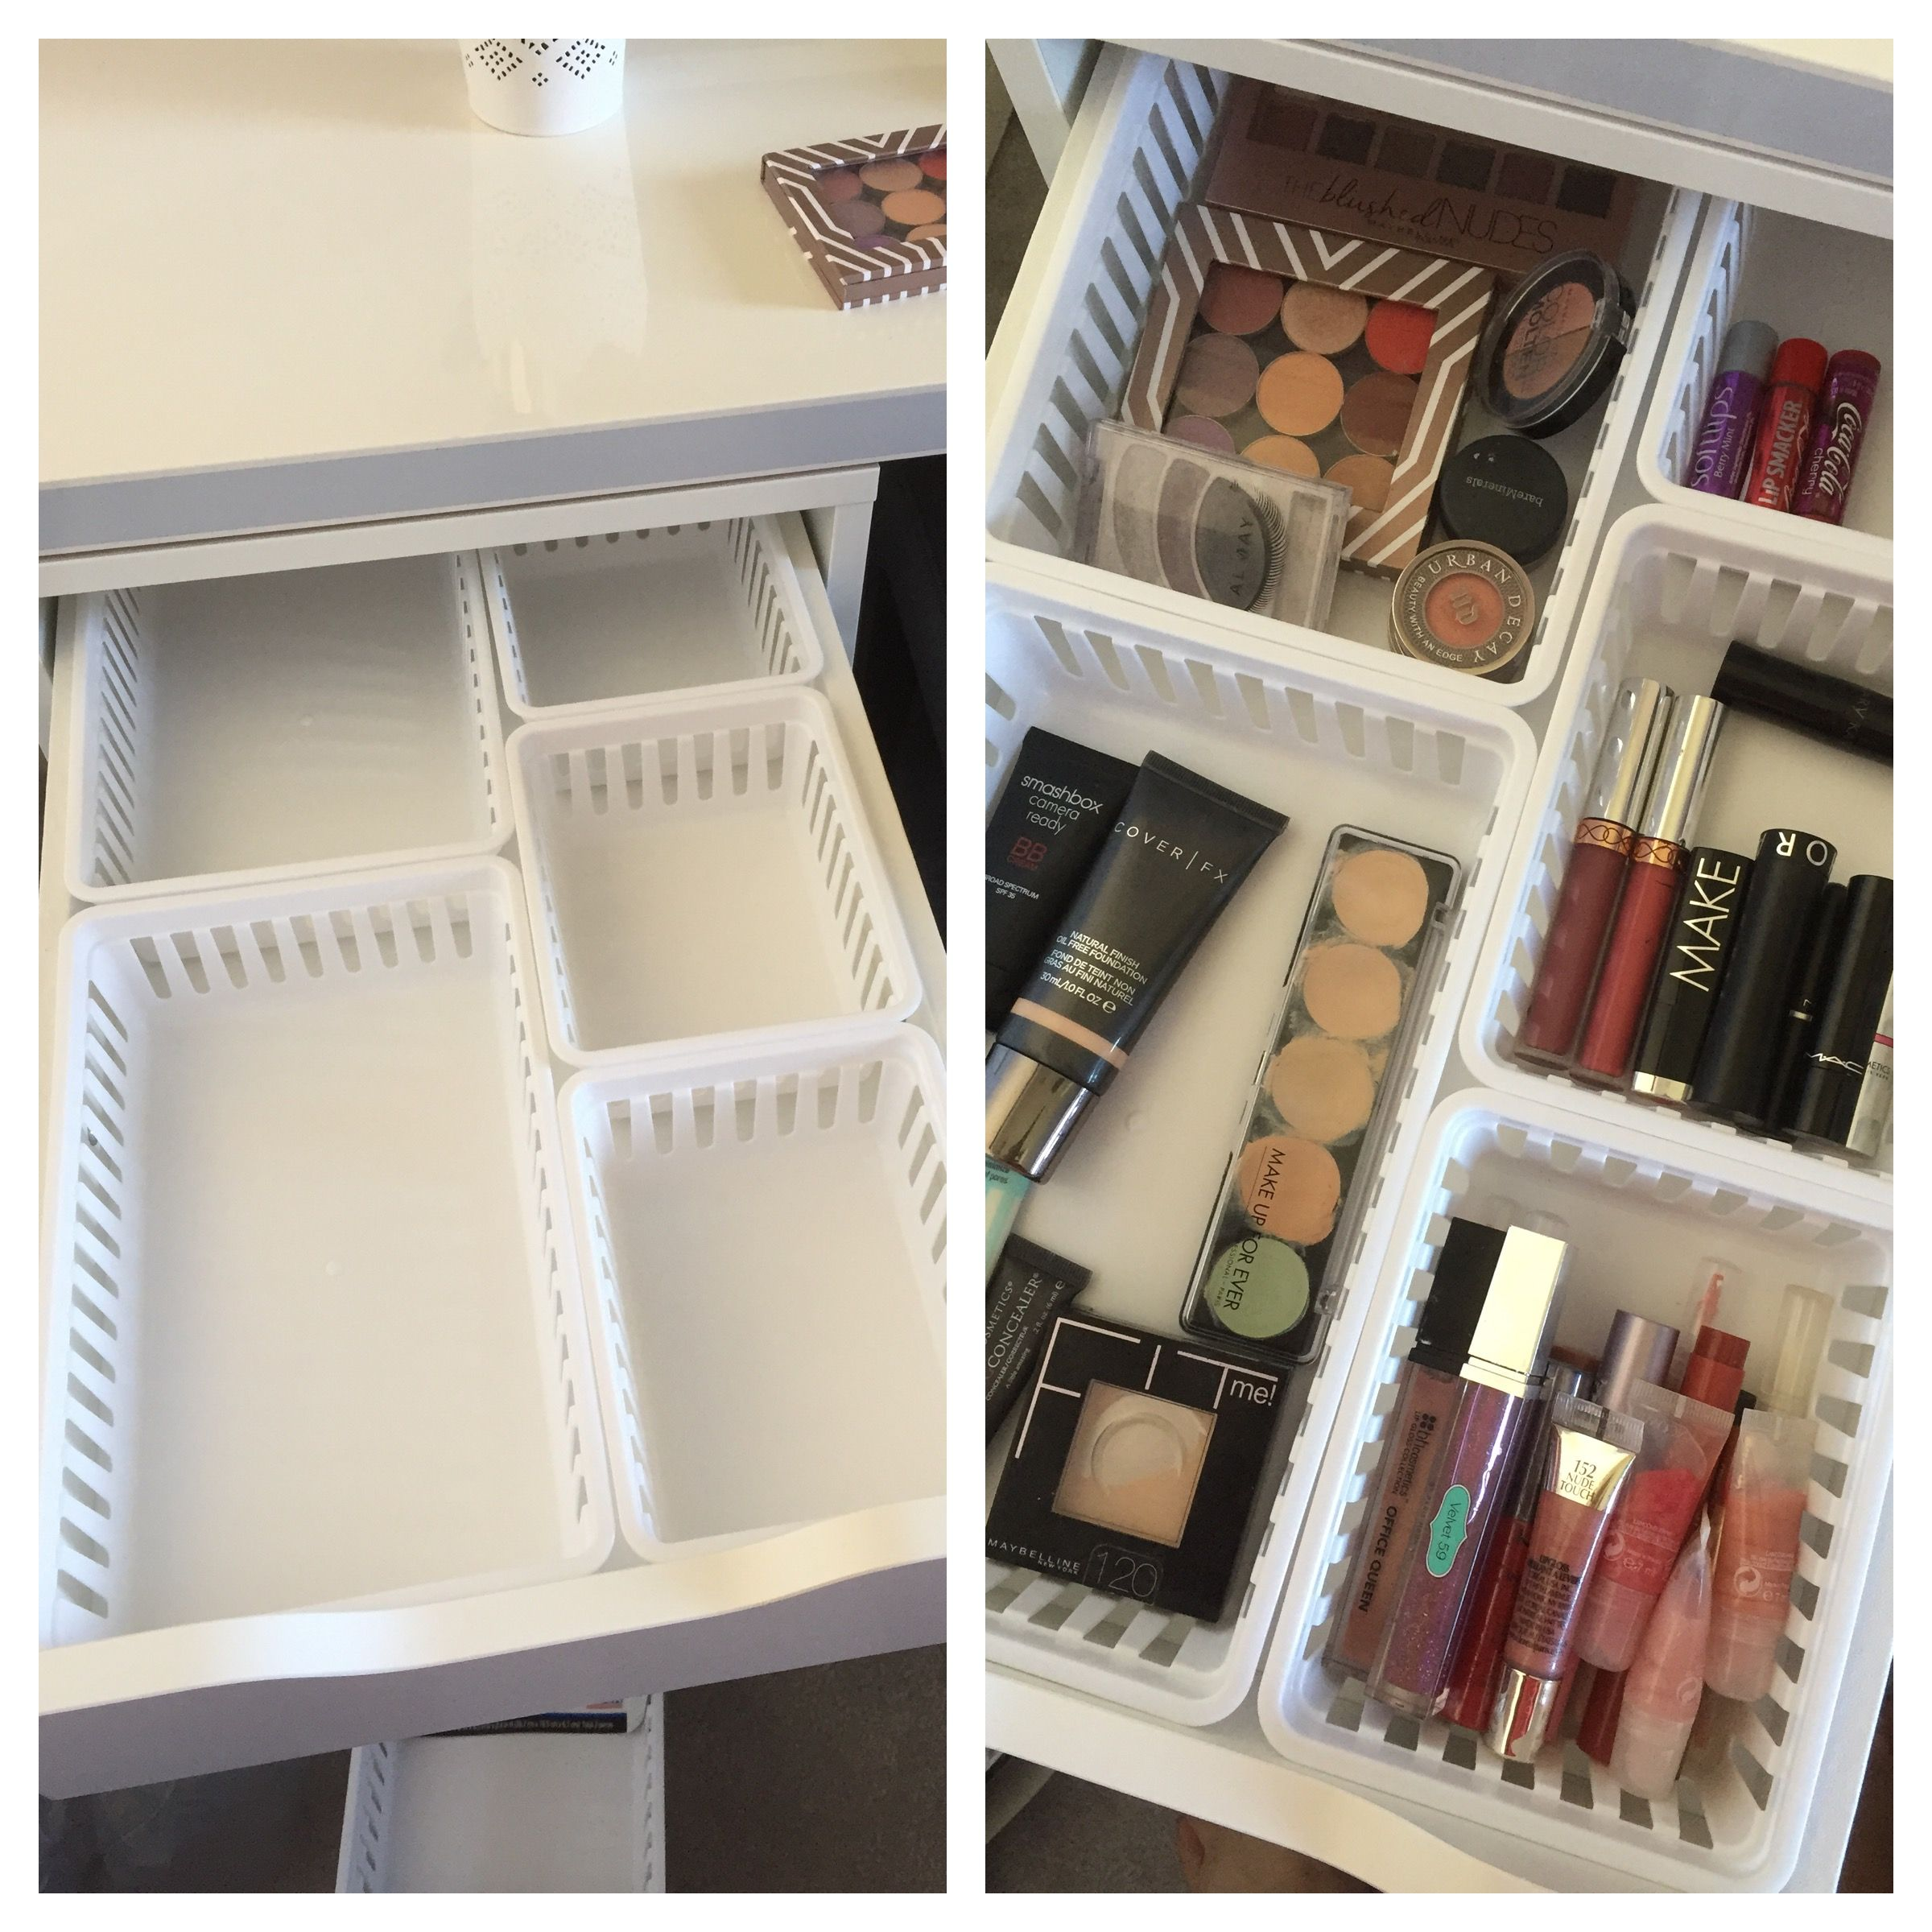 Walmart Makeup Storage Ideas for IKEA Alex Drawers   makeup storage with  MainStays kitchen storage trays from Walmart fit perfectly in Alex drawers. Walmart Makeup Storage Ideas for IKEA Alex Drawers   Vanities